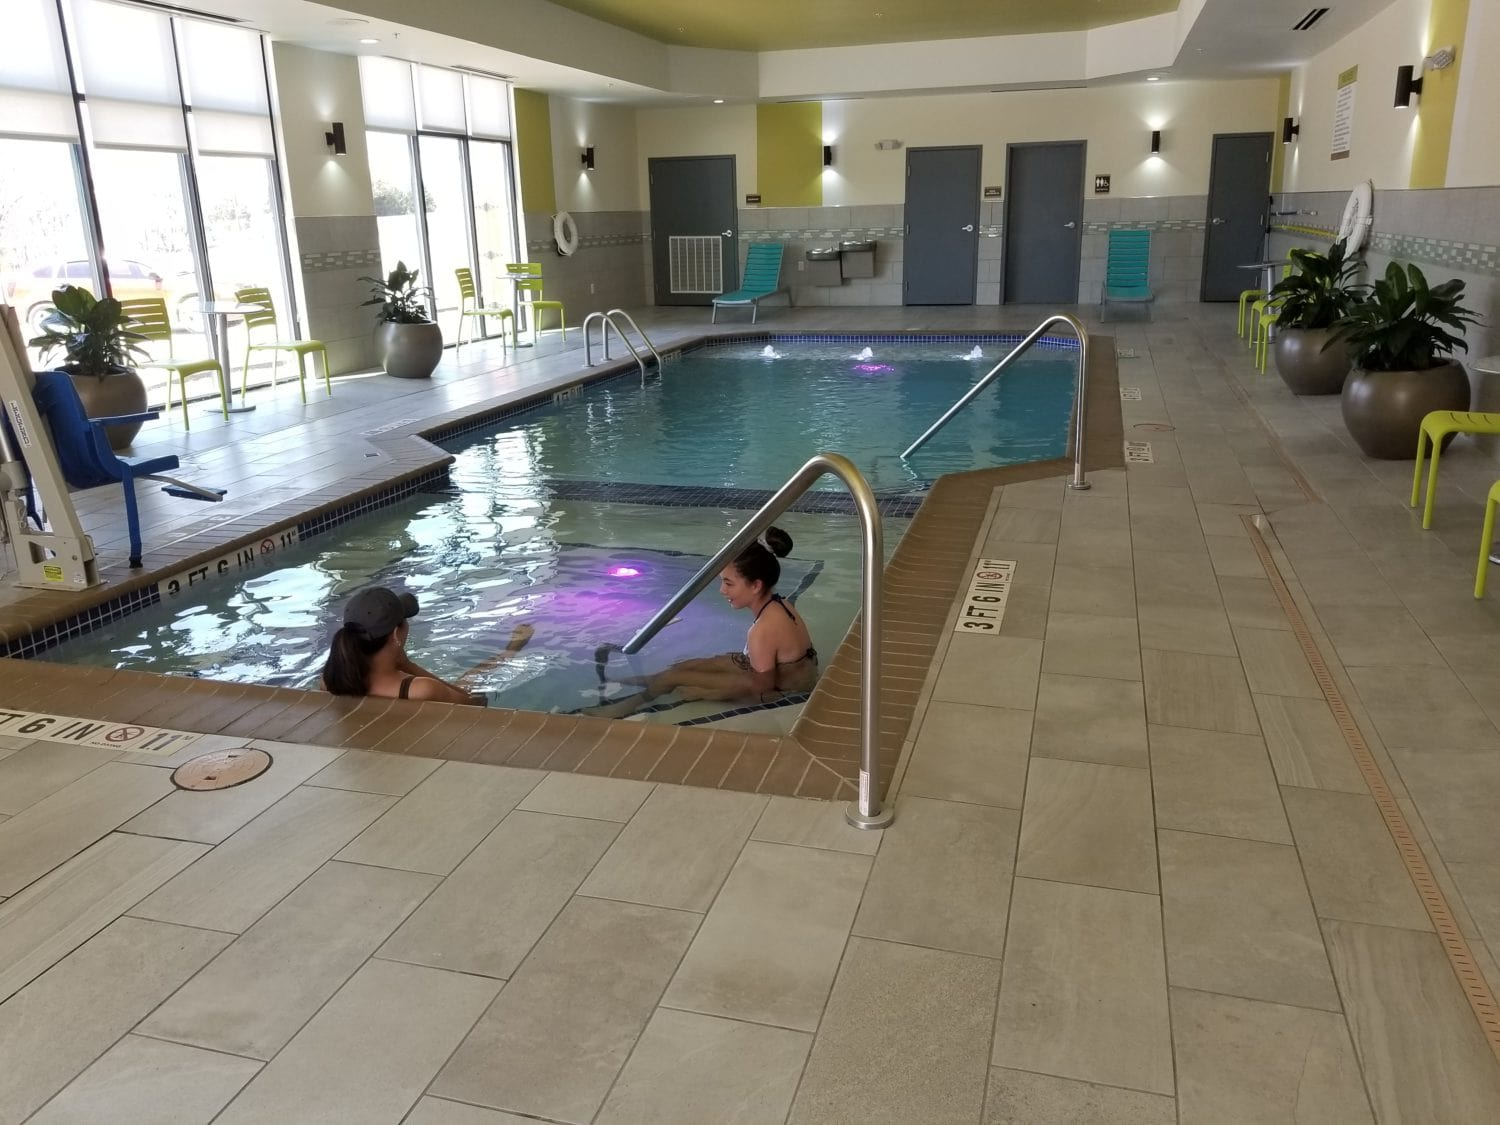 Home2Suites indoor pool - Focus Daily News